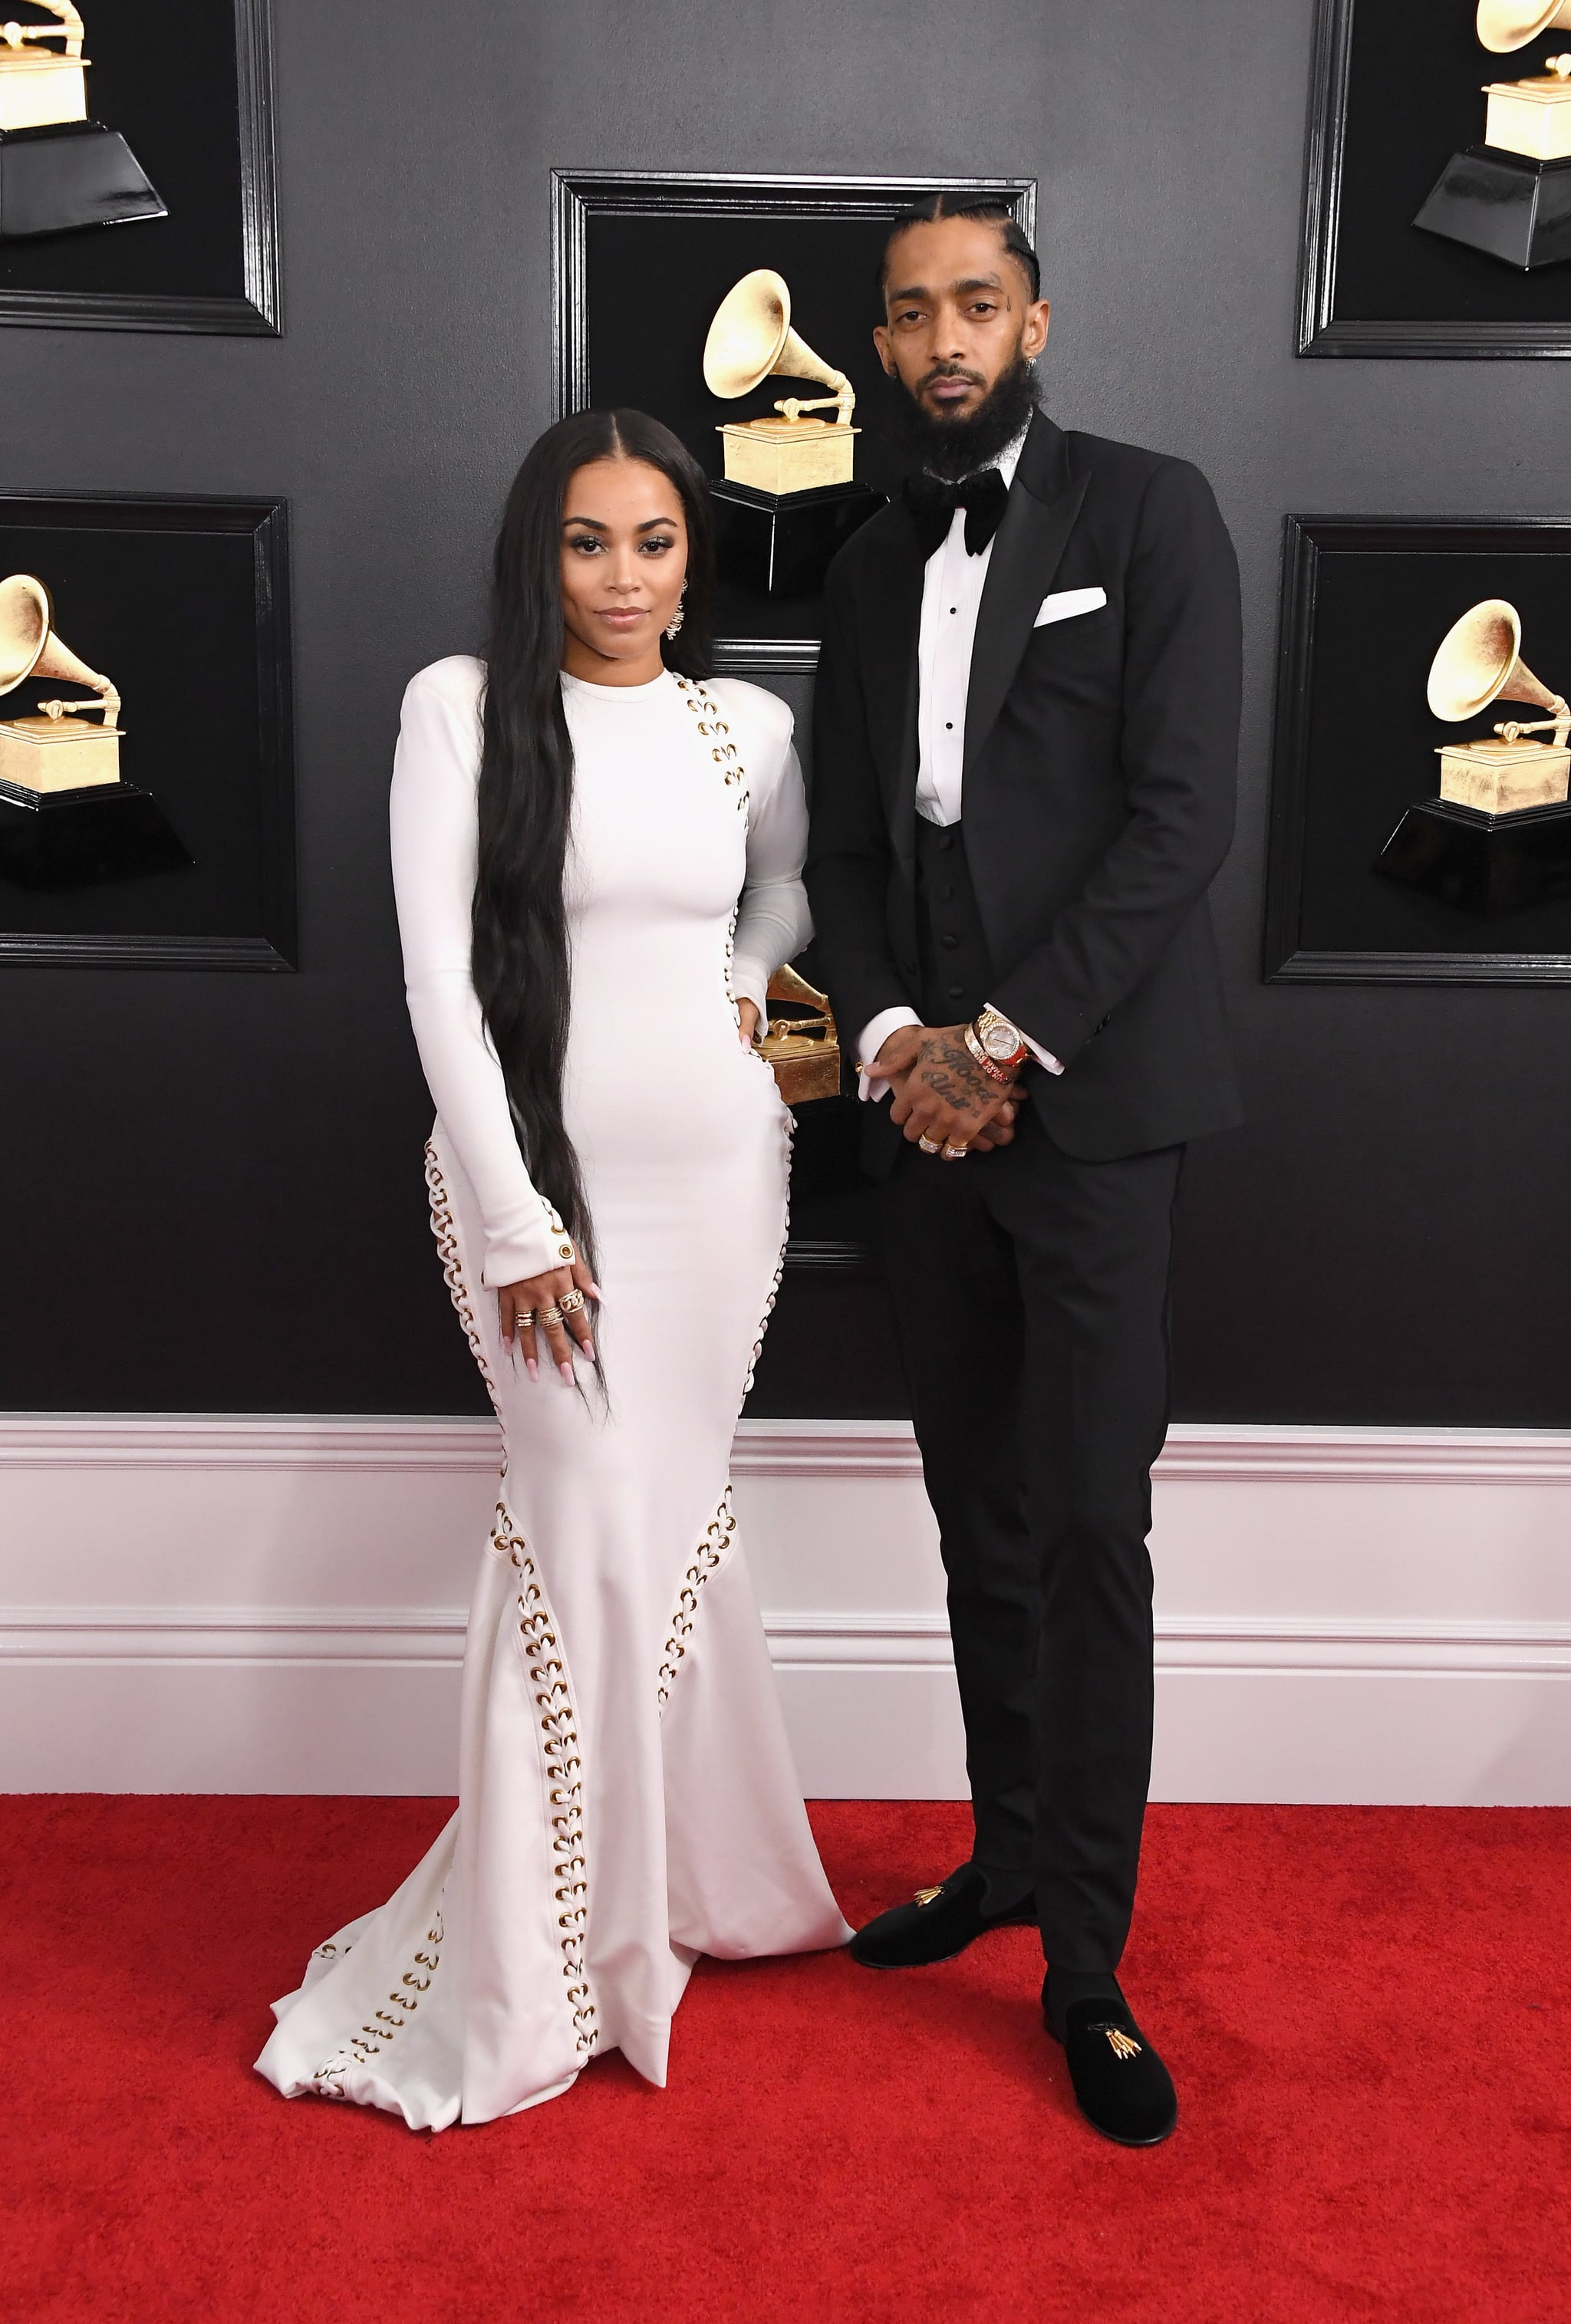 LOS ANGELES, CA - FEBRUARY 10:  Lauren London (L) and Nipsey Hussle attend the 61st Annual GRAMMY Awards at Staples Center on February 10, 2019 in Los Angeles, California.  (Photo by Steve Granitz/WireImage)